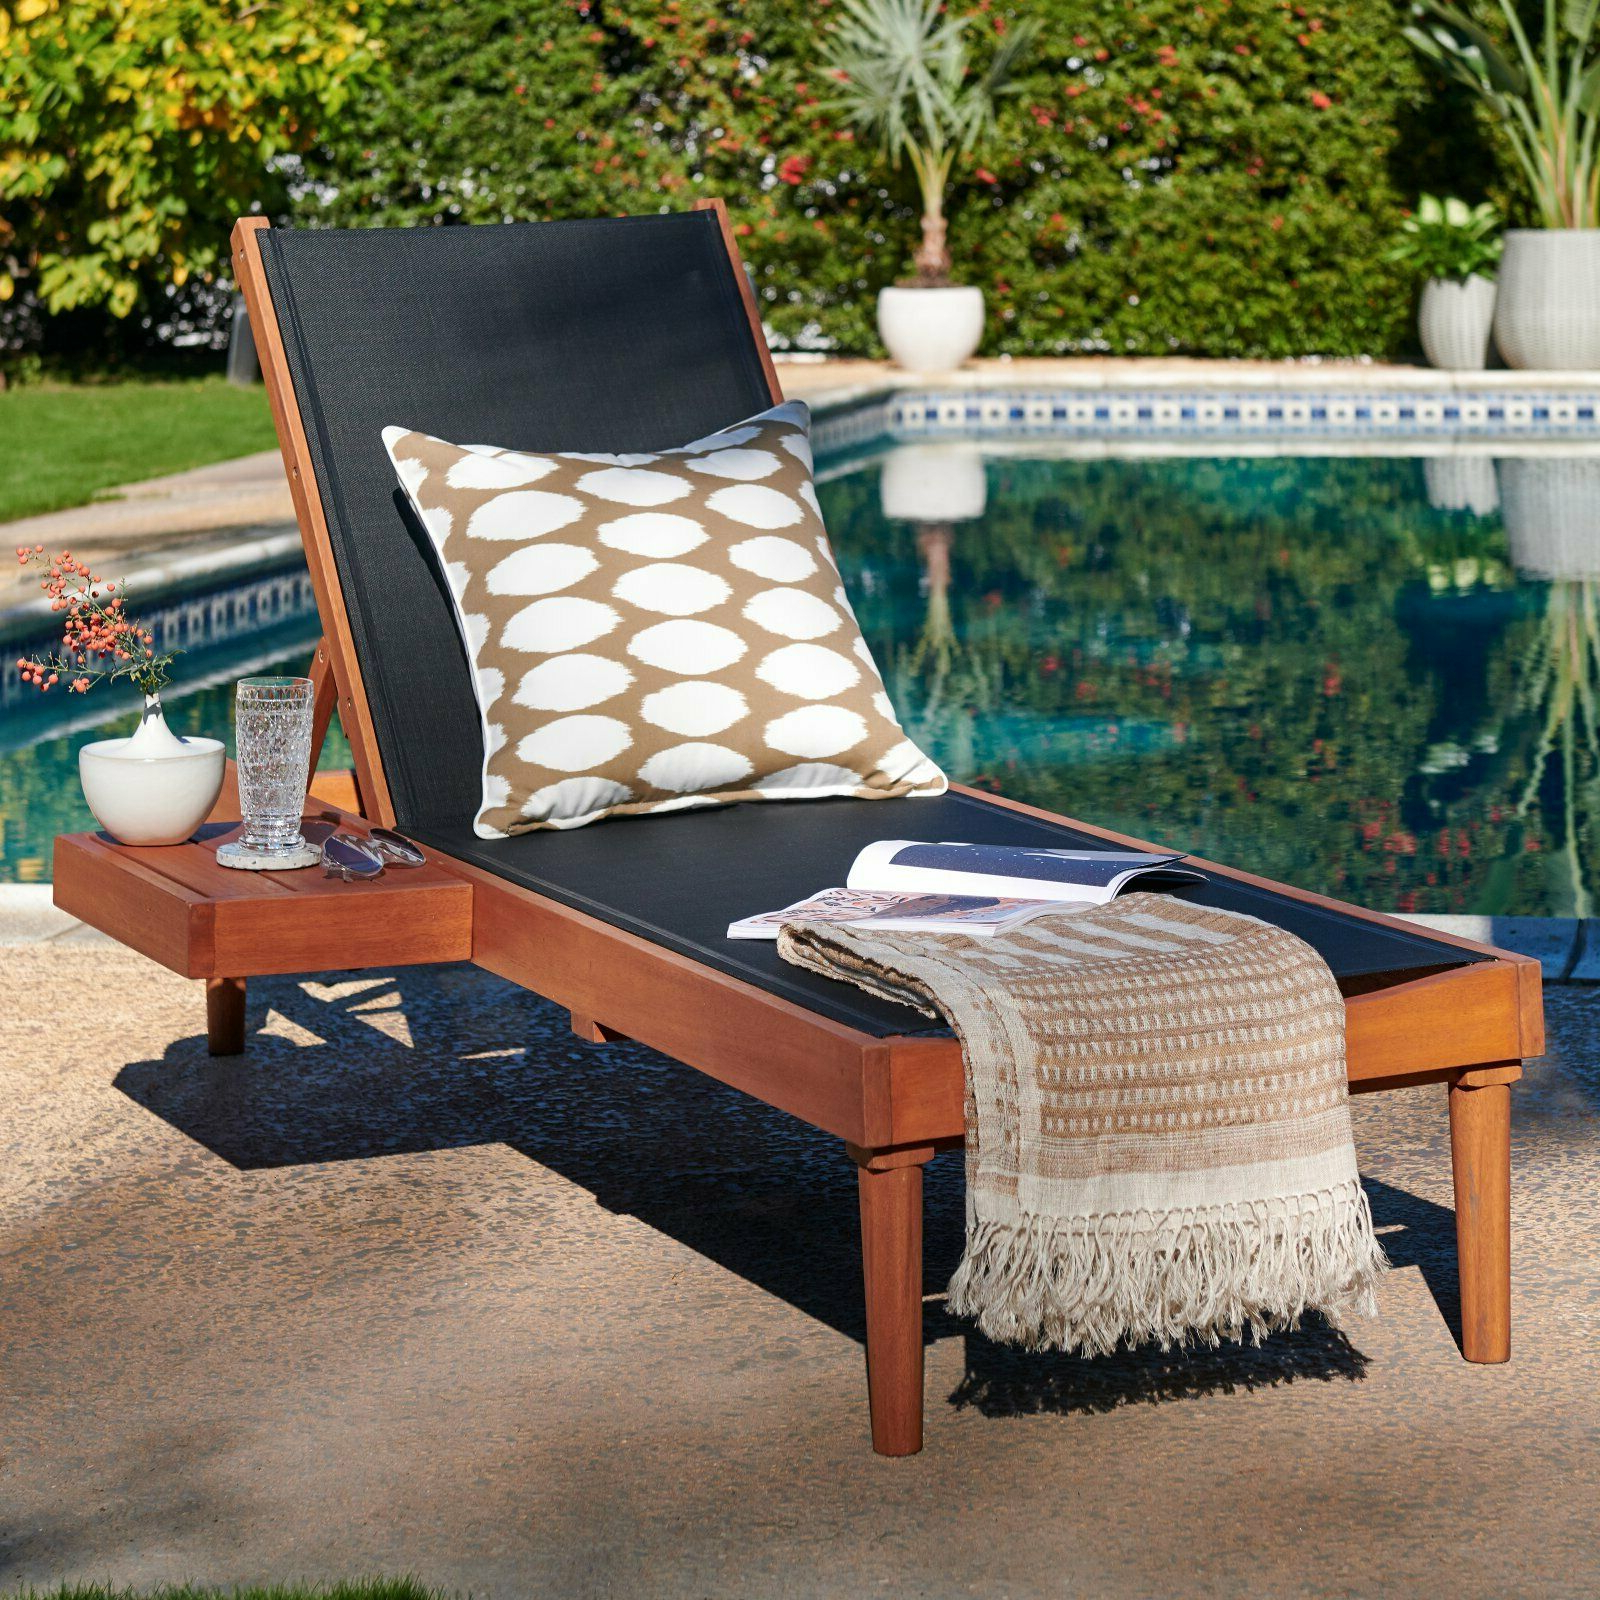 Outdoor Sling Eucalyptus Chaise Loungers For Best And Newest Natural Eucalyptus Wood Black Sling Chaise Lounge Outdoor Pool Lounger W/  Table (View 13 of 25)